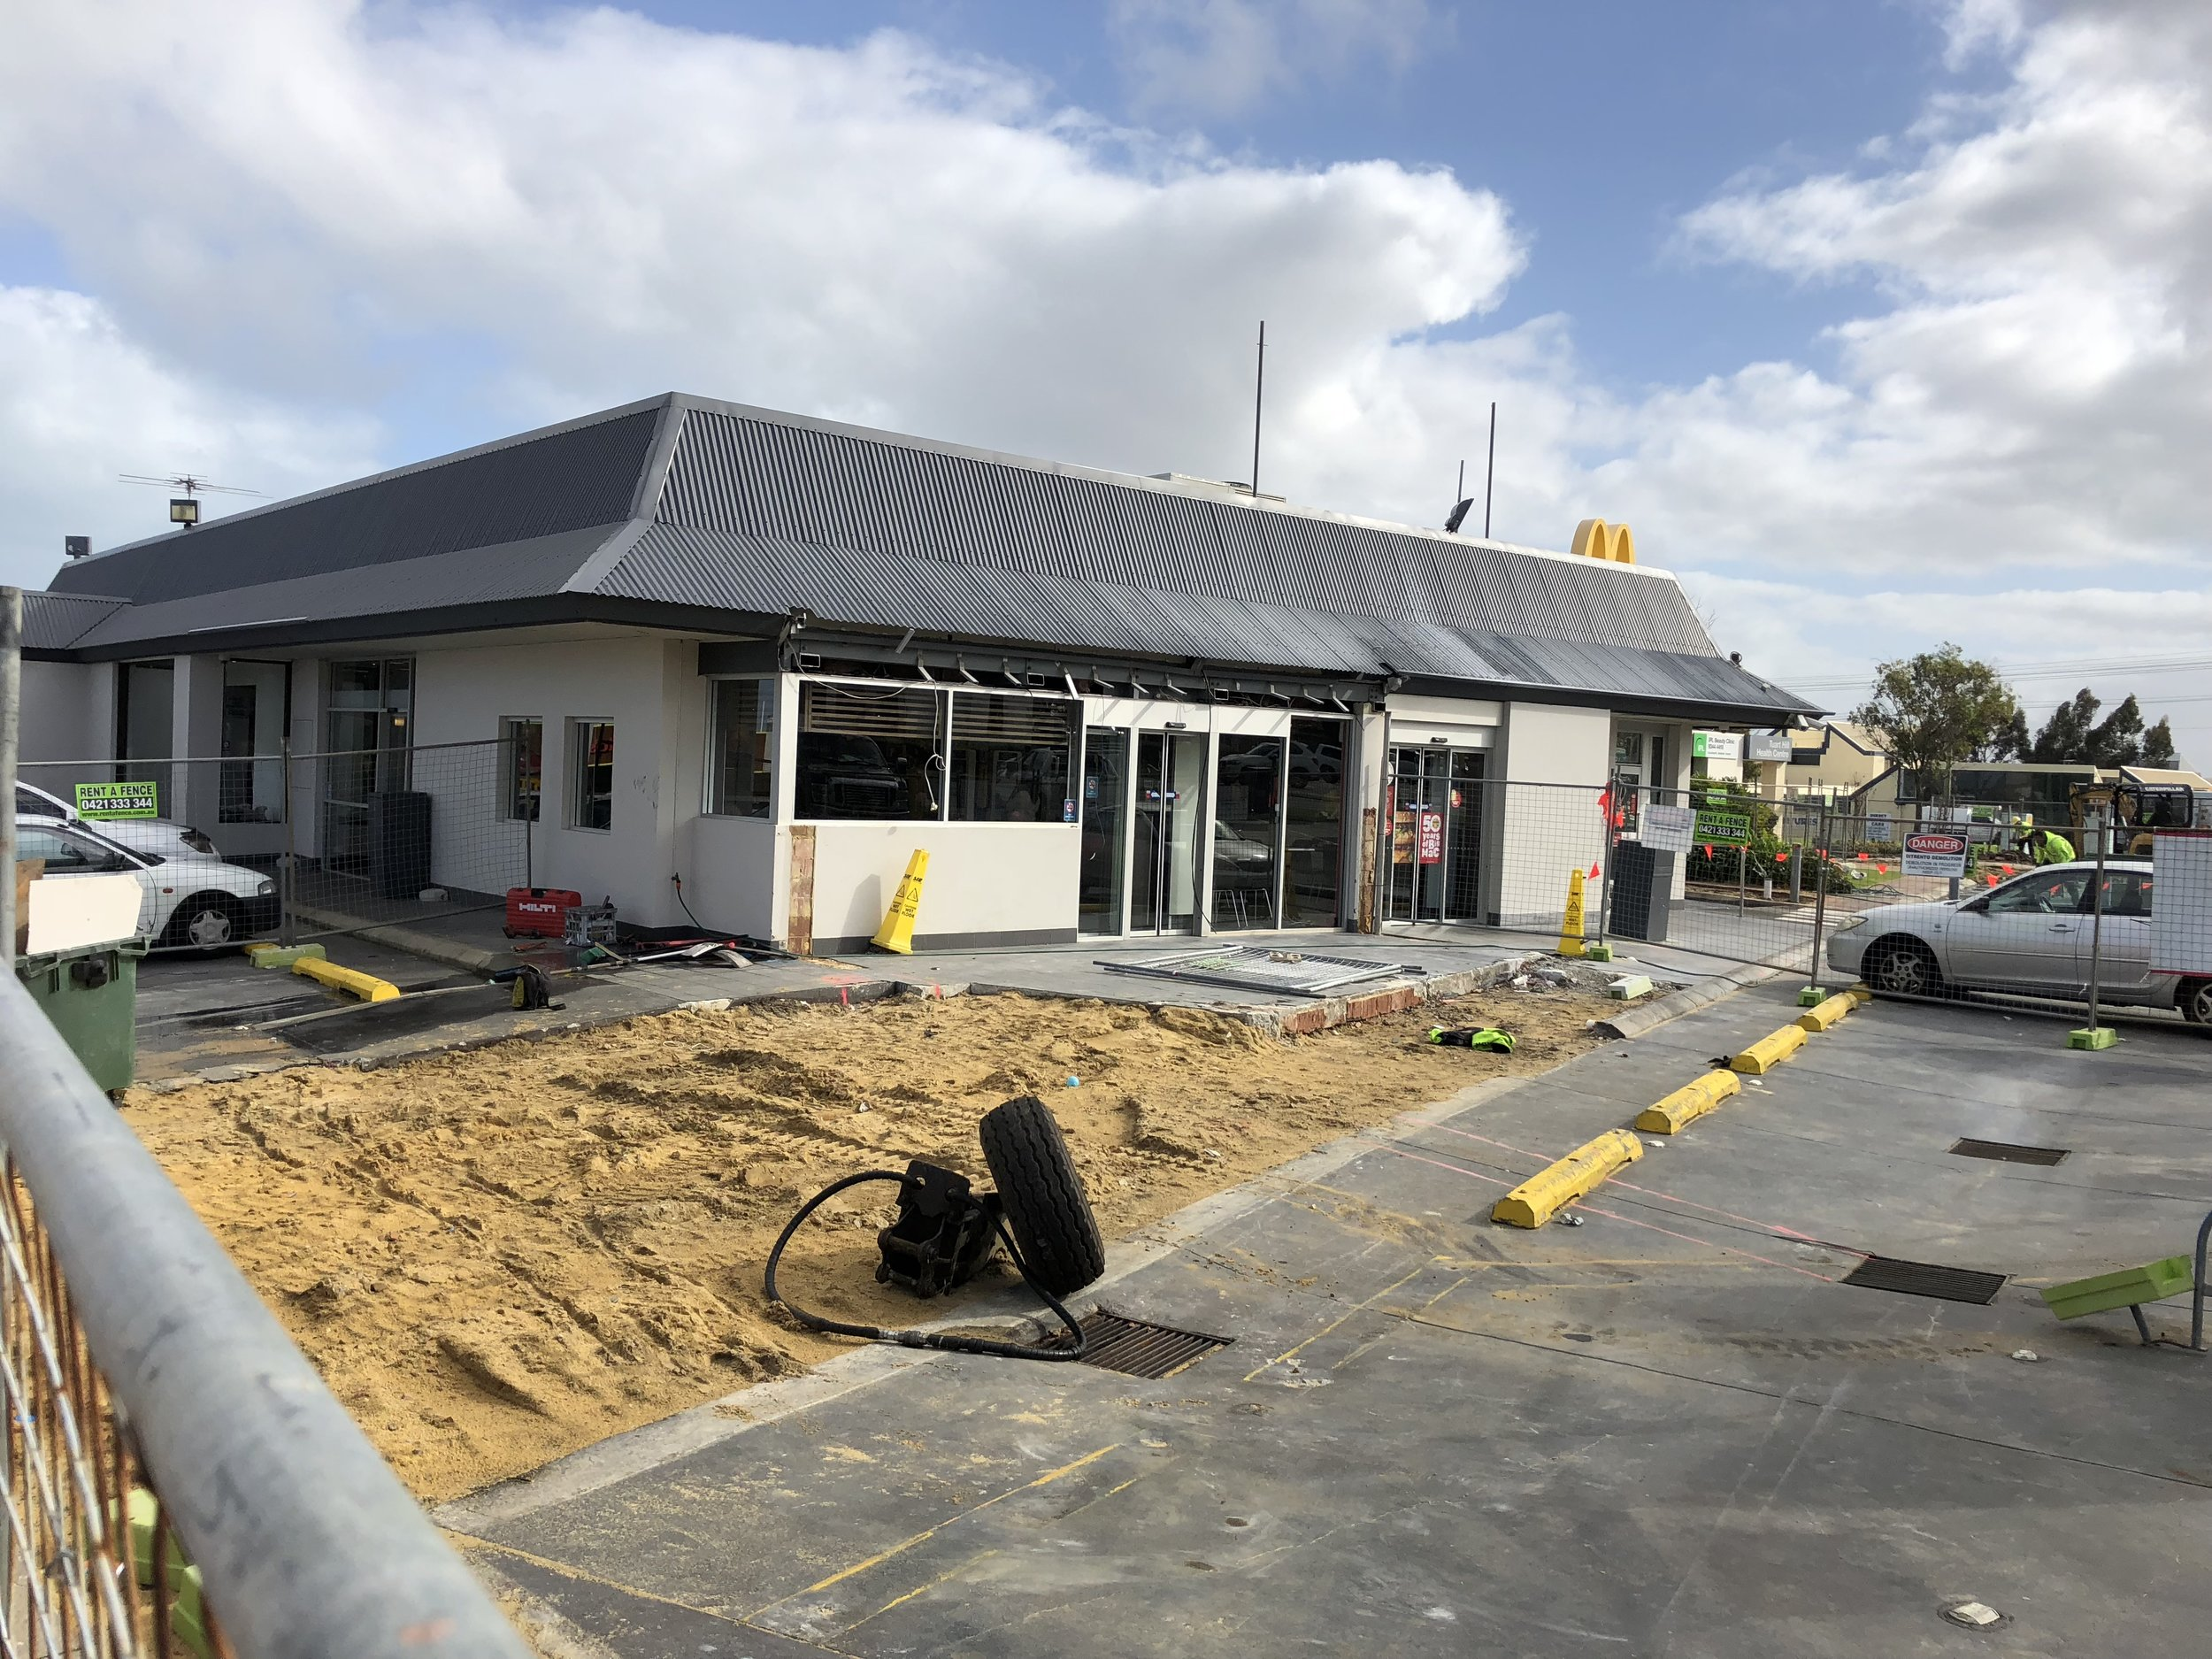 McDonalds Tuart Hill - One of Perth Flagship Restaurant is ready for a Rebuild - Watch this space for its transformation